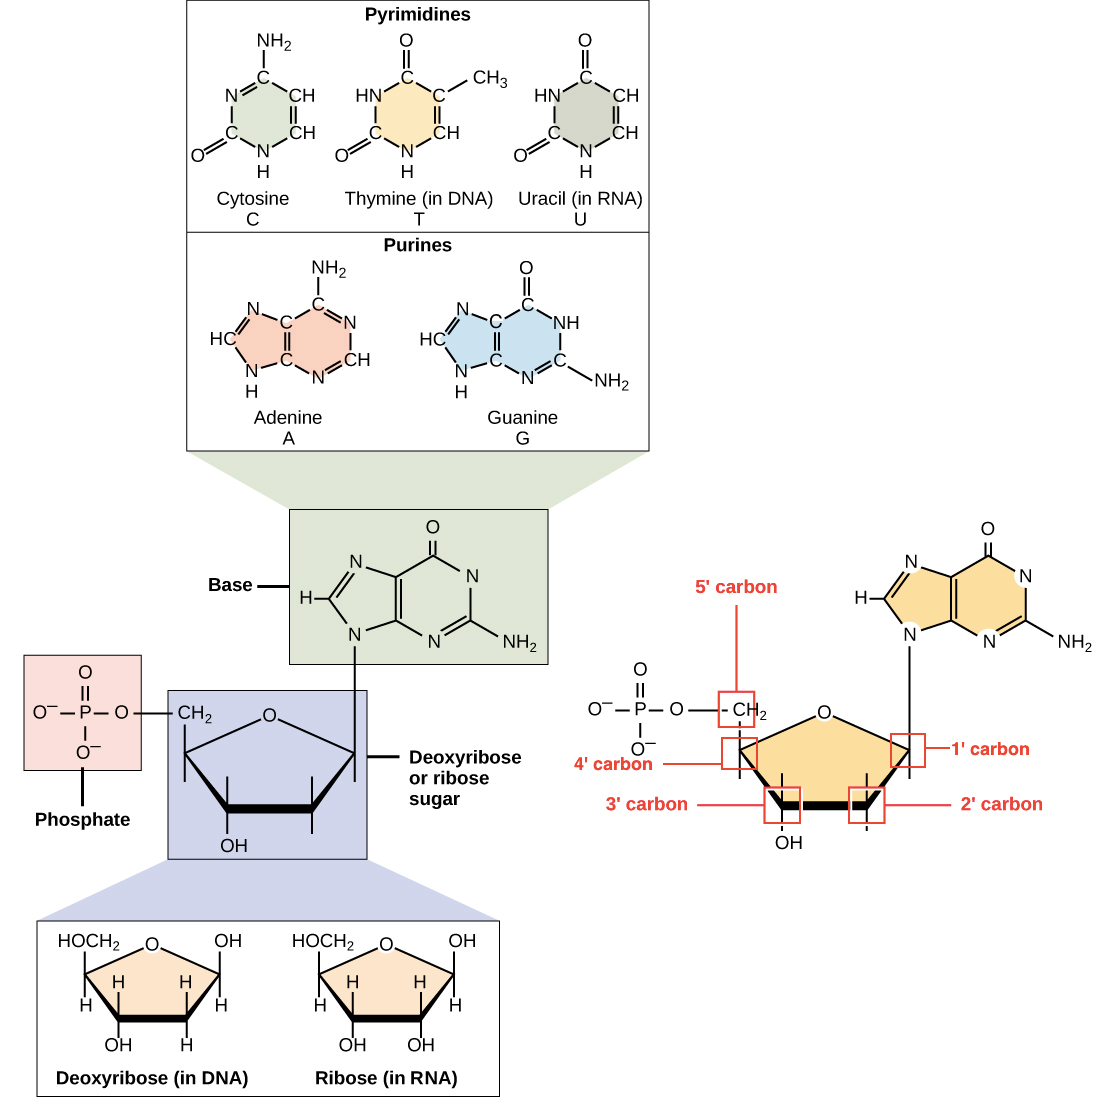 Image of the components of DNA and RNA, including the sugar (deoxyribose or ribose), phosphate group, and nitrogenous base. Bases include the pyrimidine bases (cytosine, thymine in DNA, and uracil in RNA, one ring) and the purine bases (adenine and guanine, two rings). The phosphate group is attached to the 5' carbon. The 2' carbon bears a hydroxyl group in ribose, but no hydroxyl (just hydrogen) in deoxyribose.